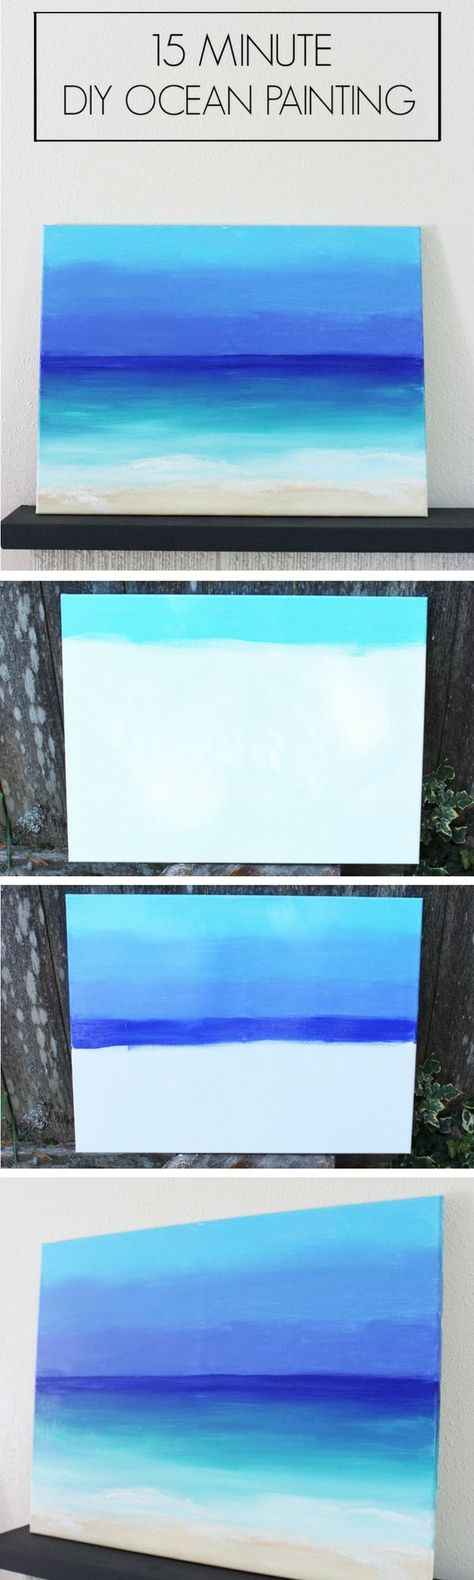 Check out the tutorial on how to make a DIY ocean view painting in 15 minutes (great for summer decor) @istandarddesign